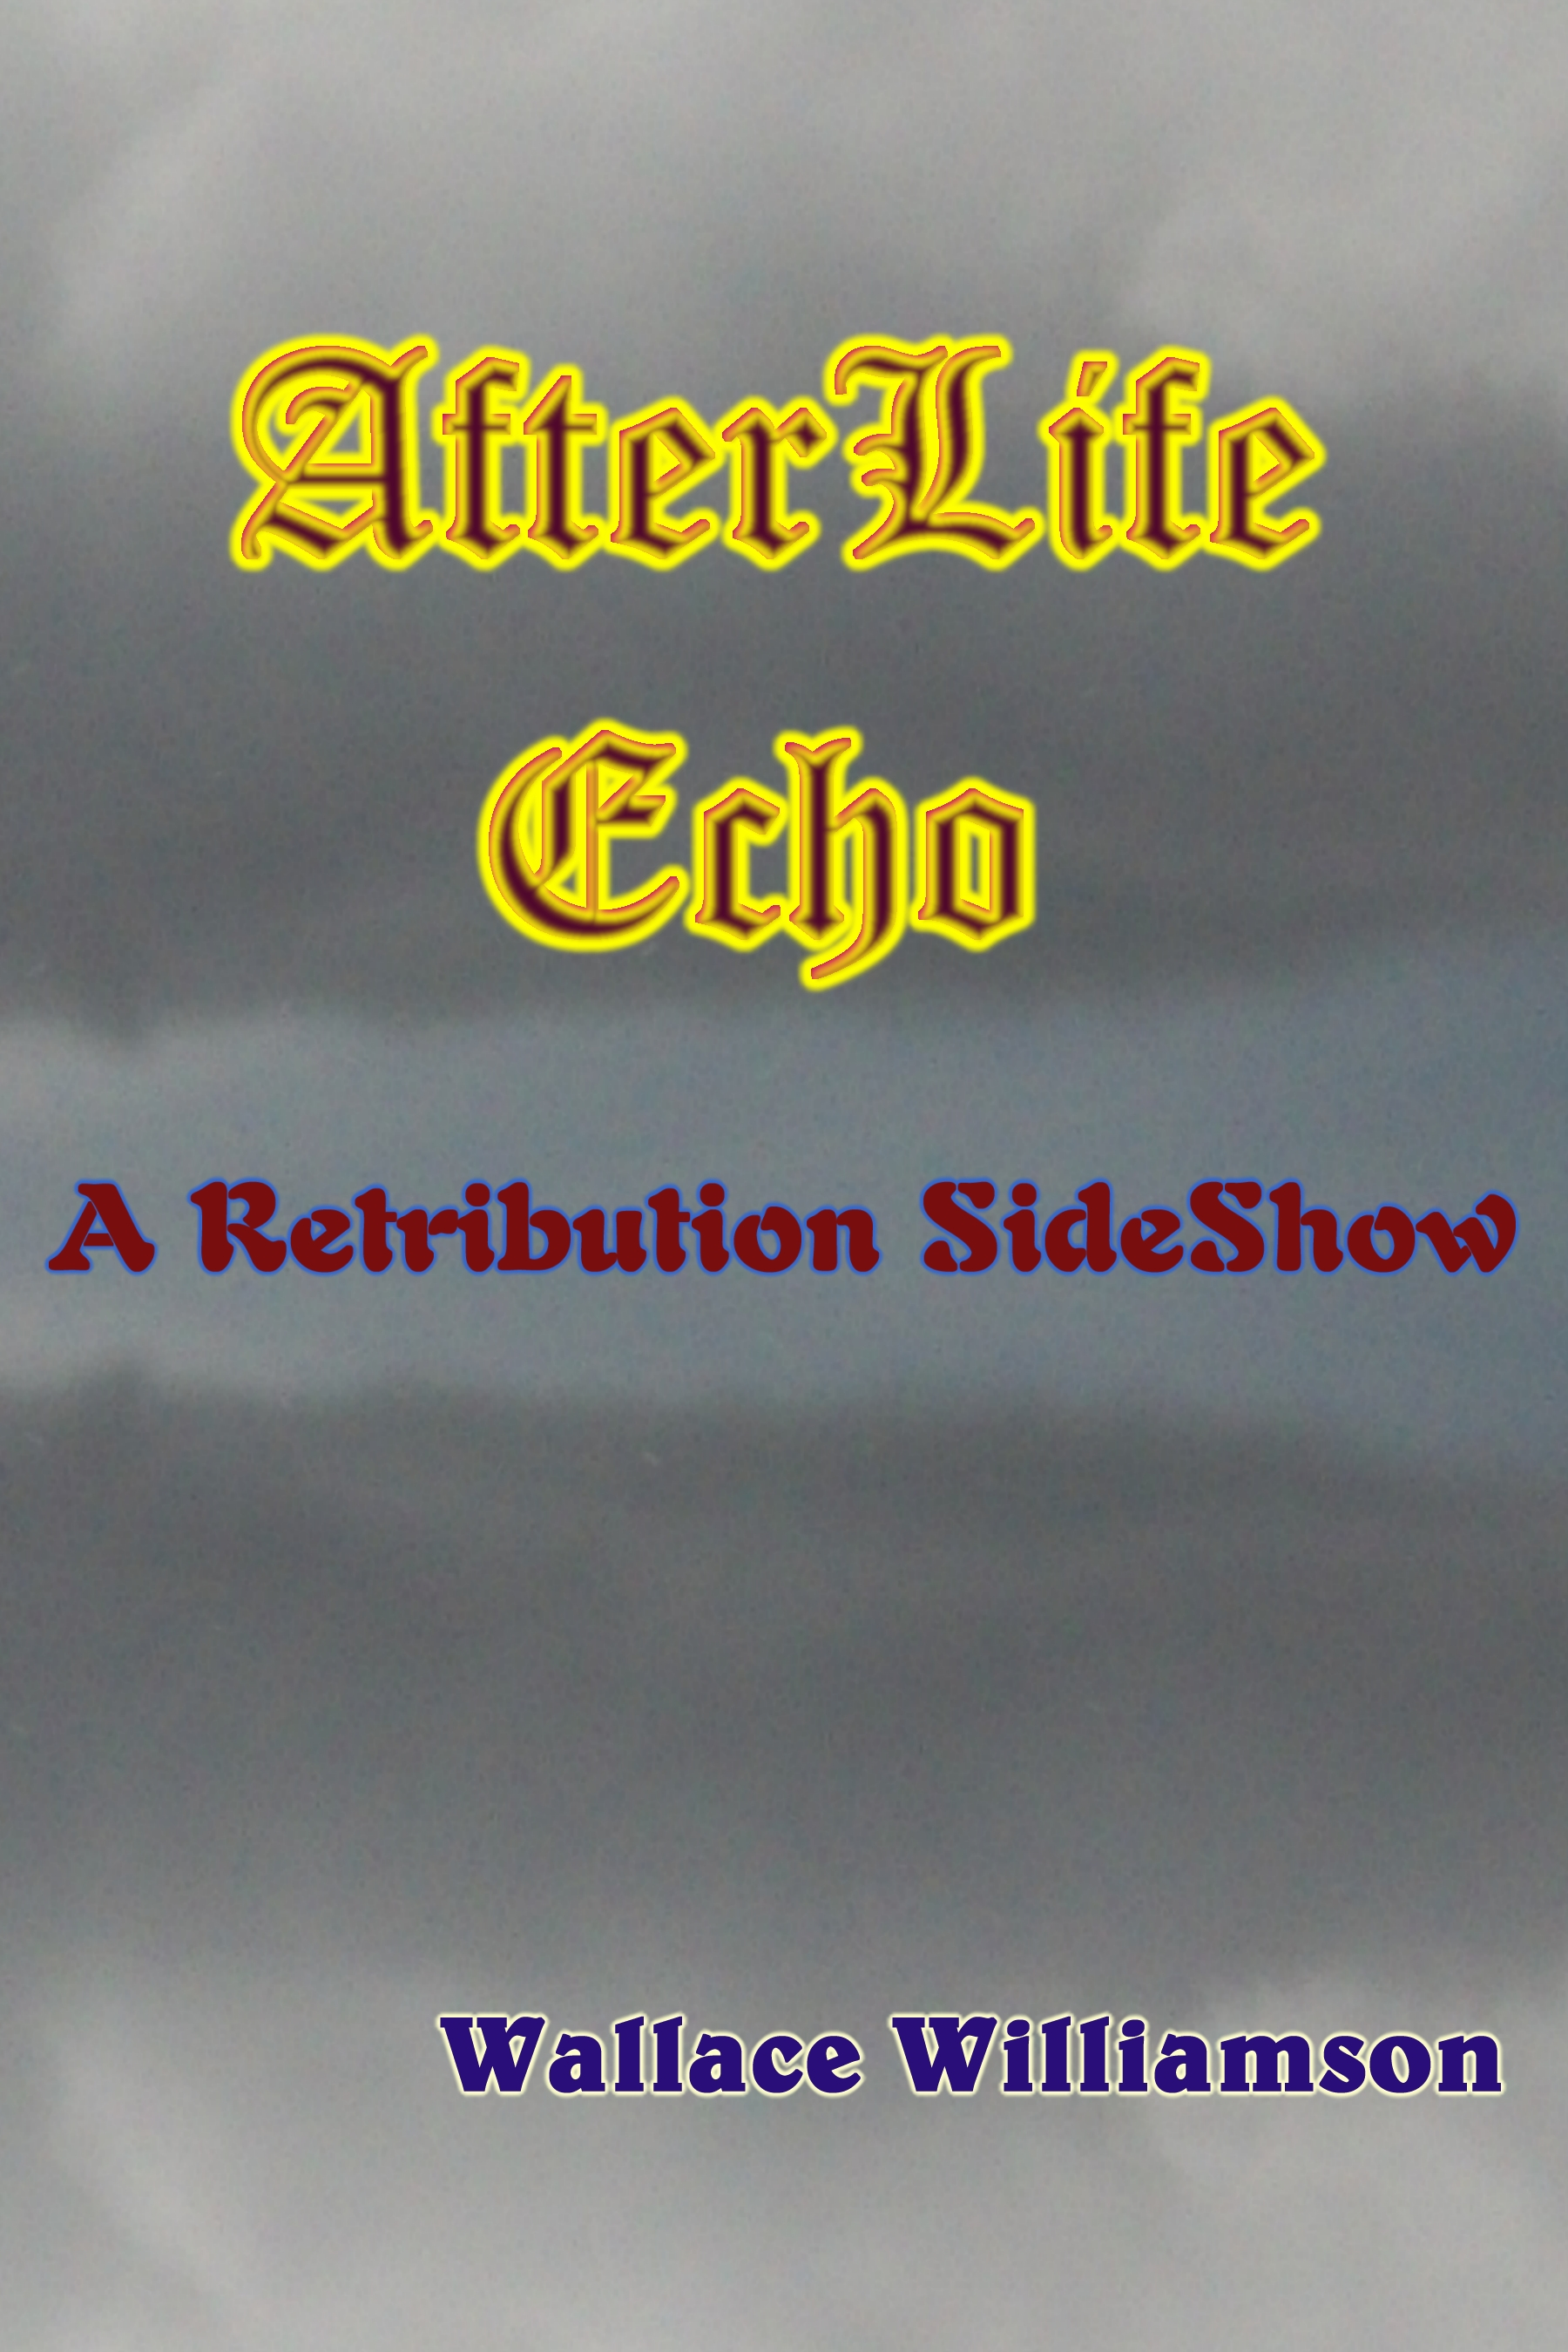 Click Here 4 AfterLife Echo @ Amazon!!!